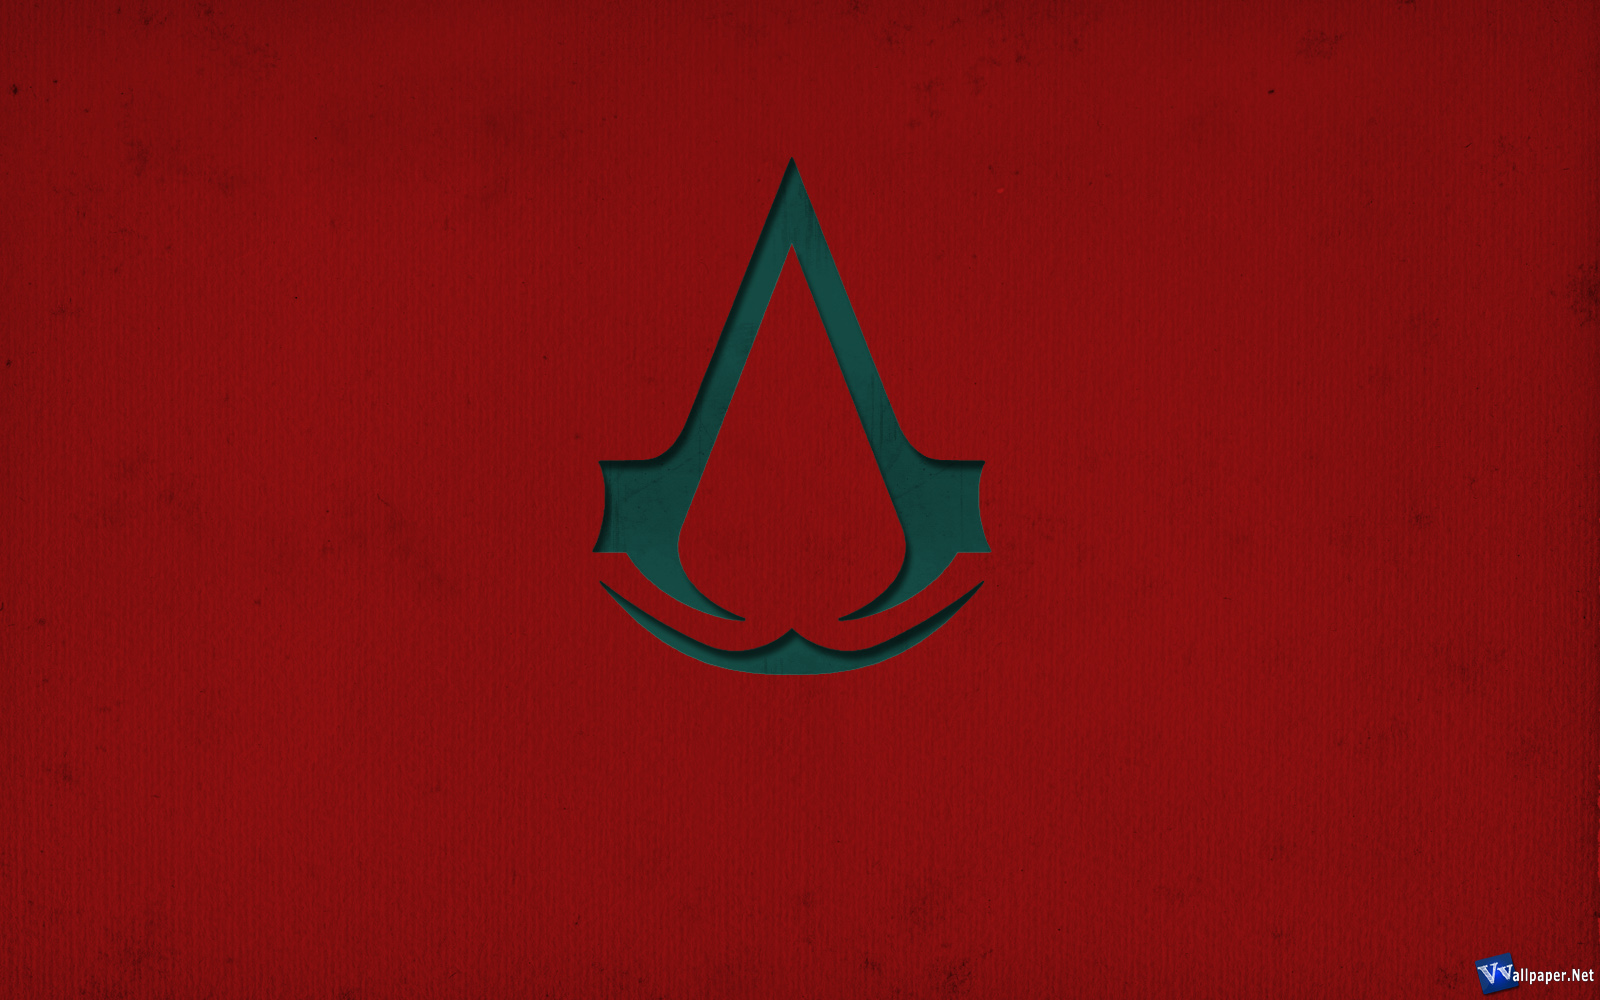 assassin's creed symbol hd wallpapers - wallpapers